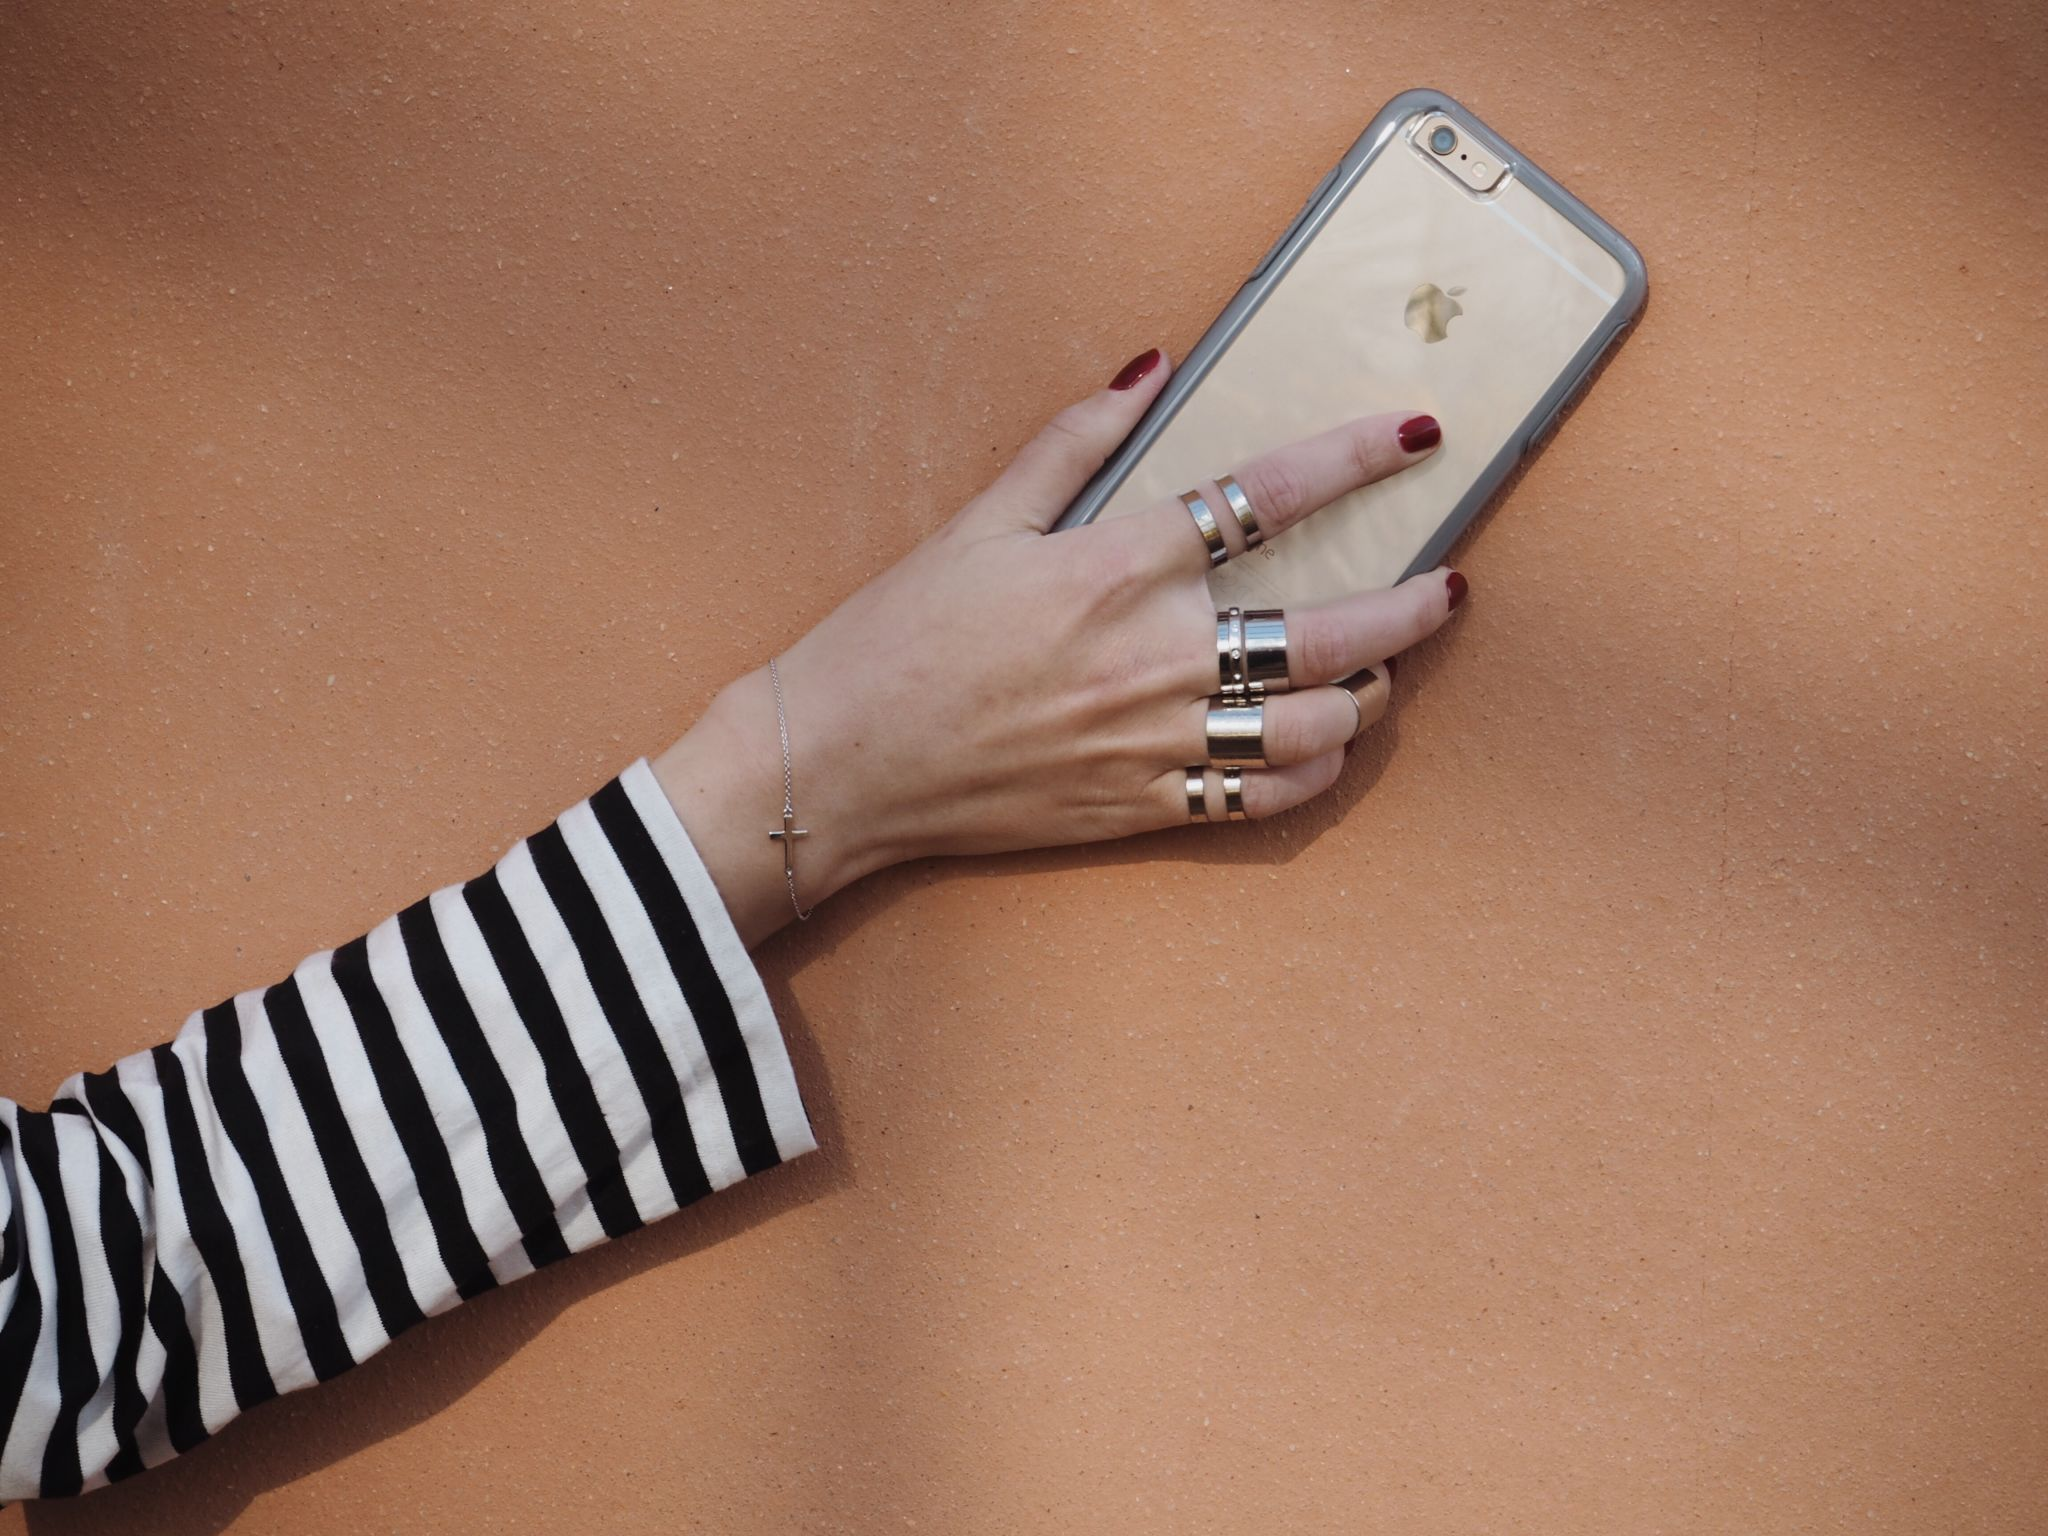 hortus-botanicus-amsterdam-botanic-garden-silver-rings-phone-case-otterbox-symmetry-clear-stripes